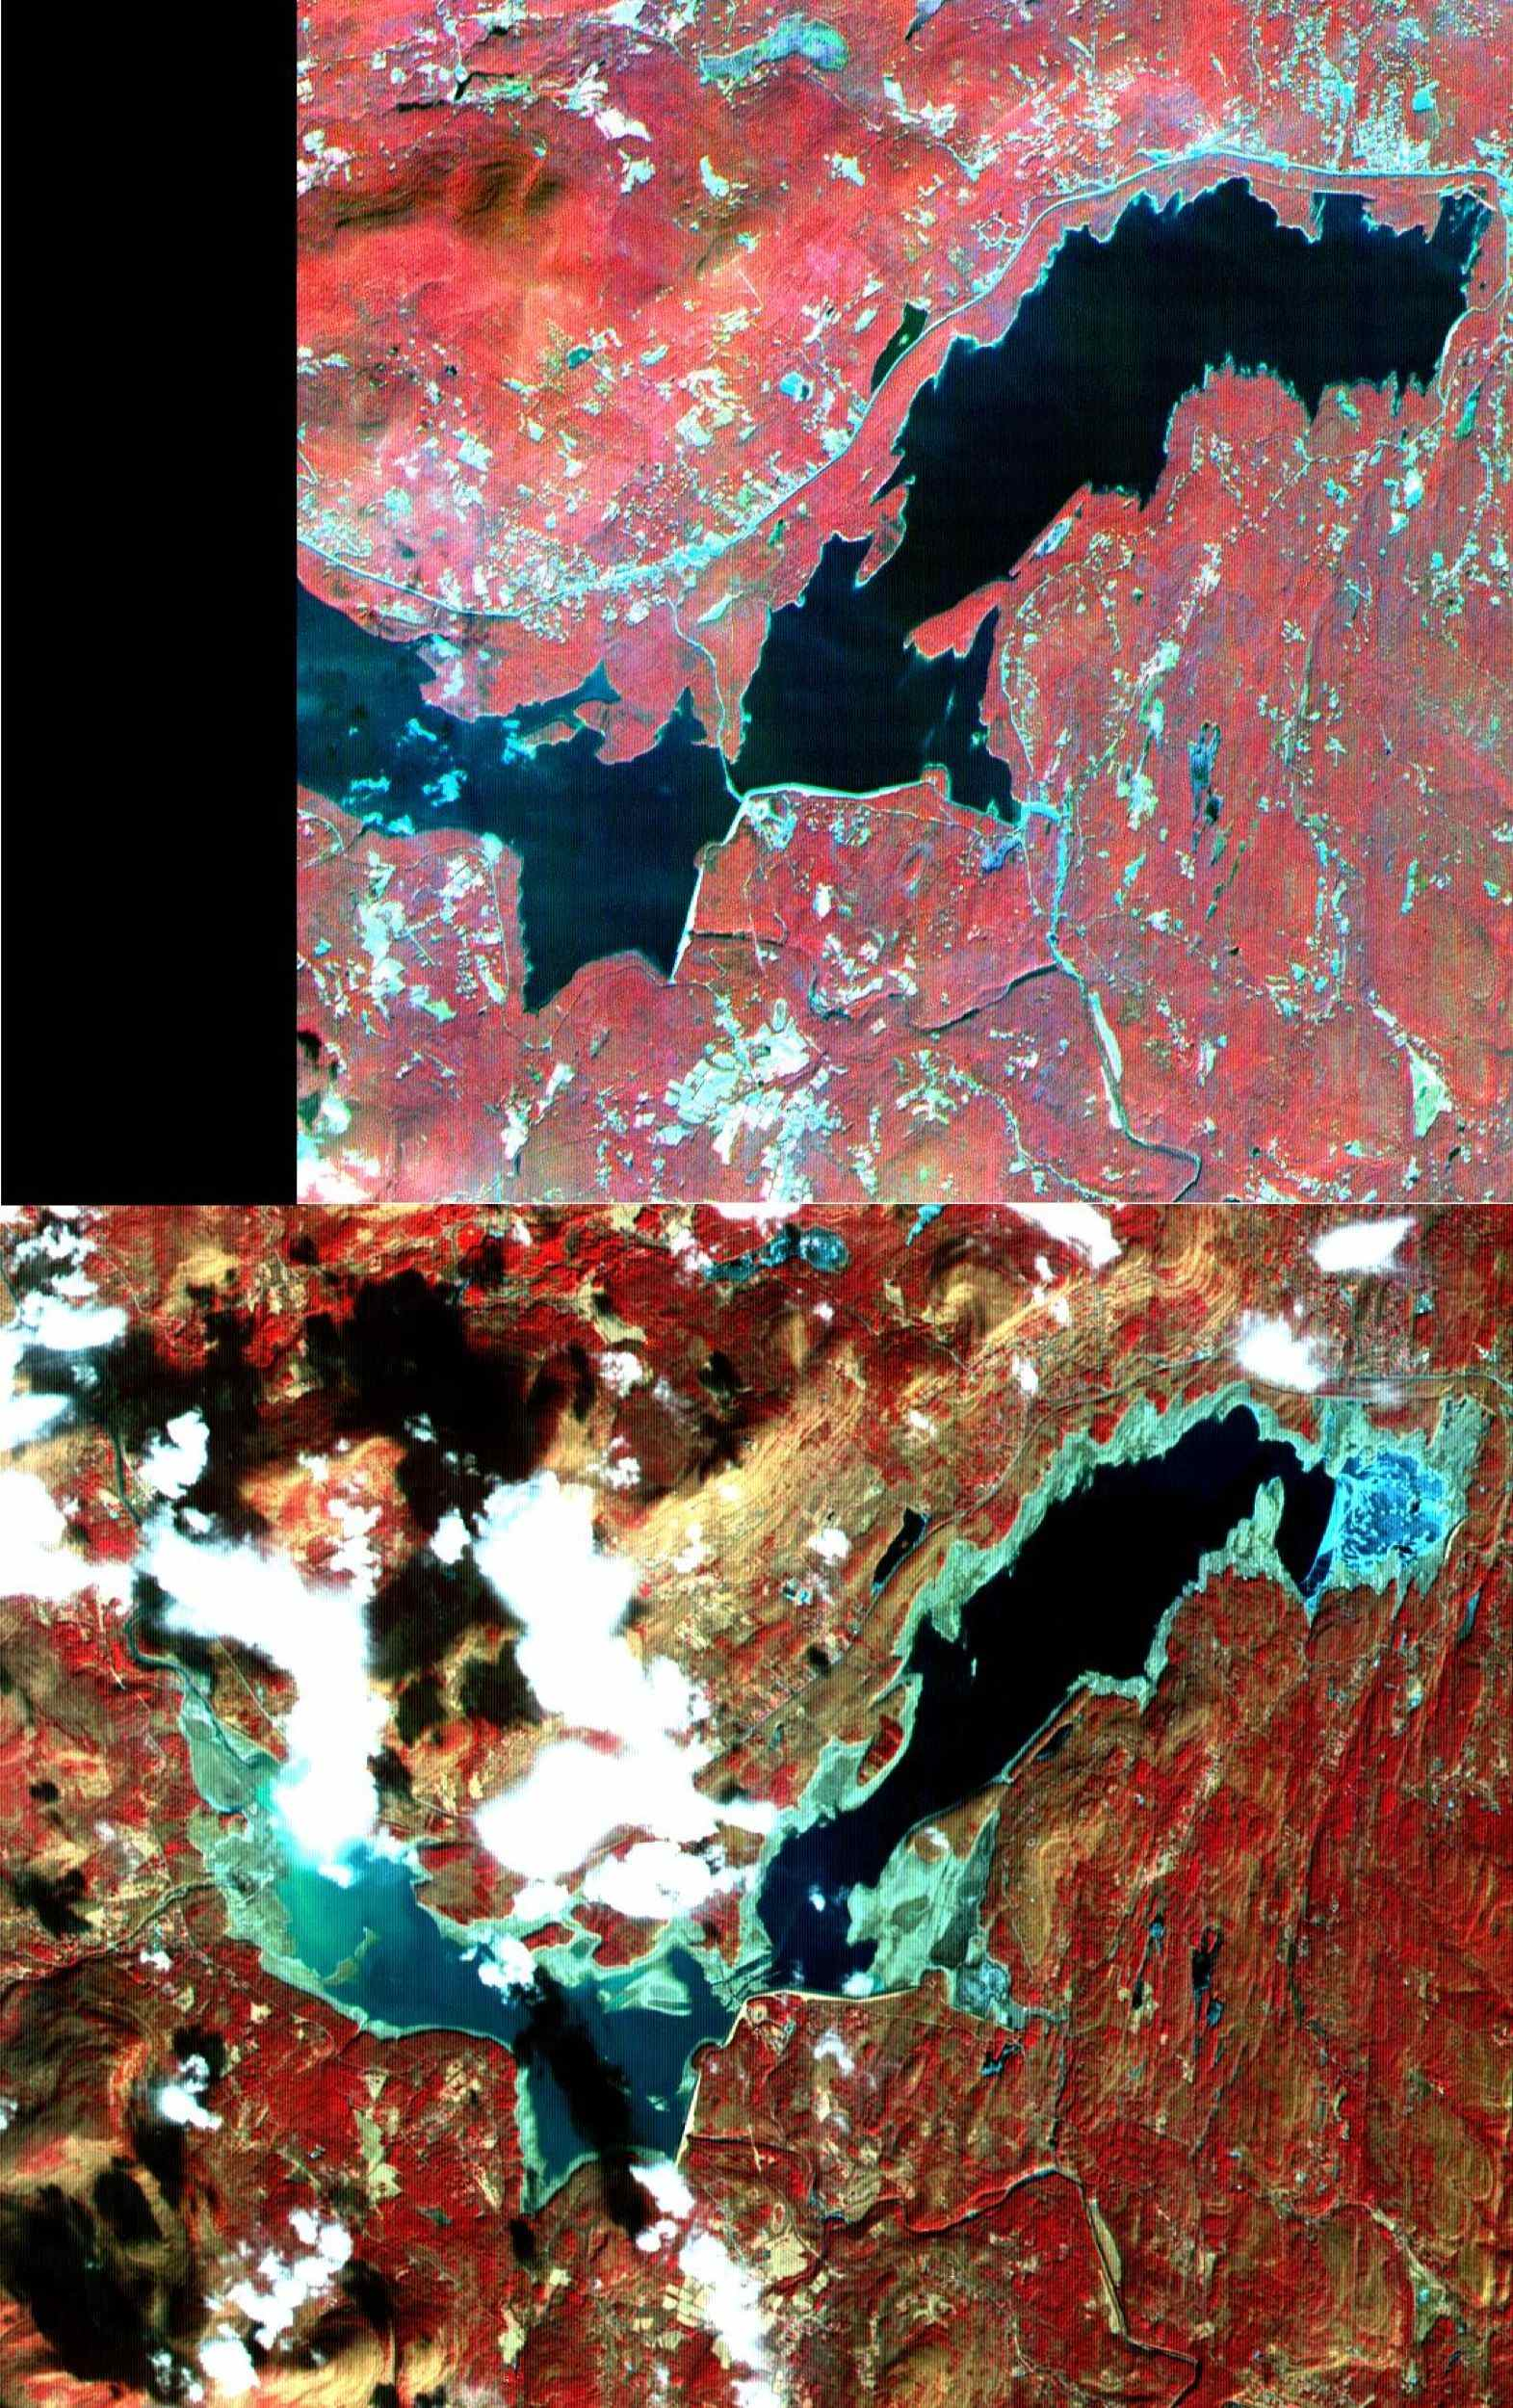 Ashokan Reservoir in New York, is seen in this pair of images acquired by NASA's Terra satellite on September 18, 2000 and February 3, 2002.